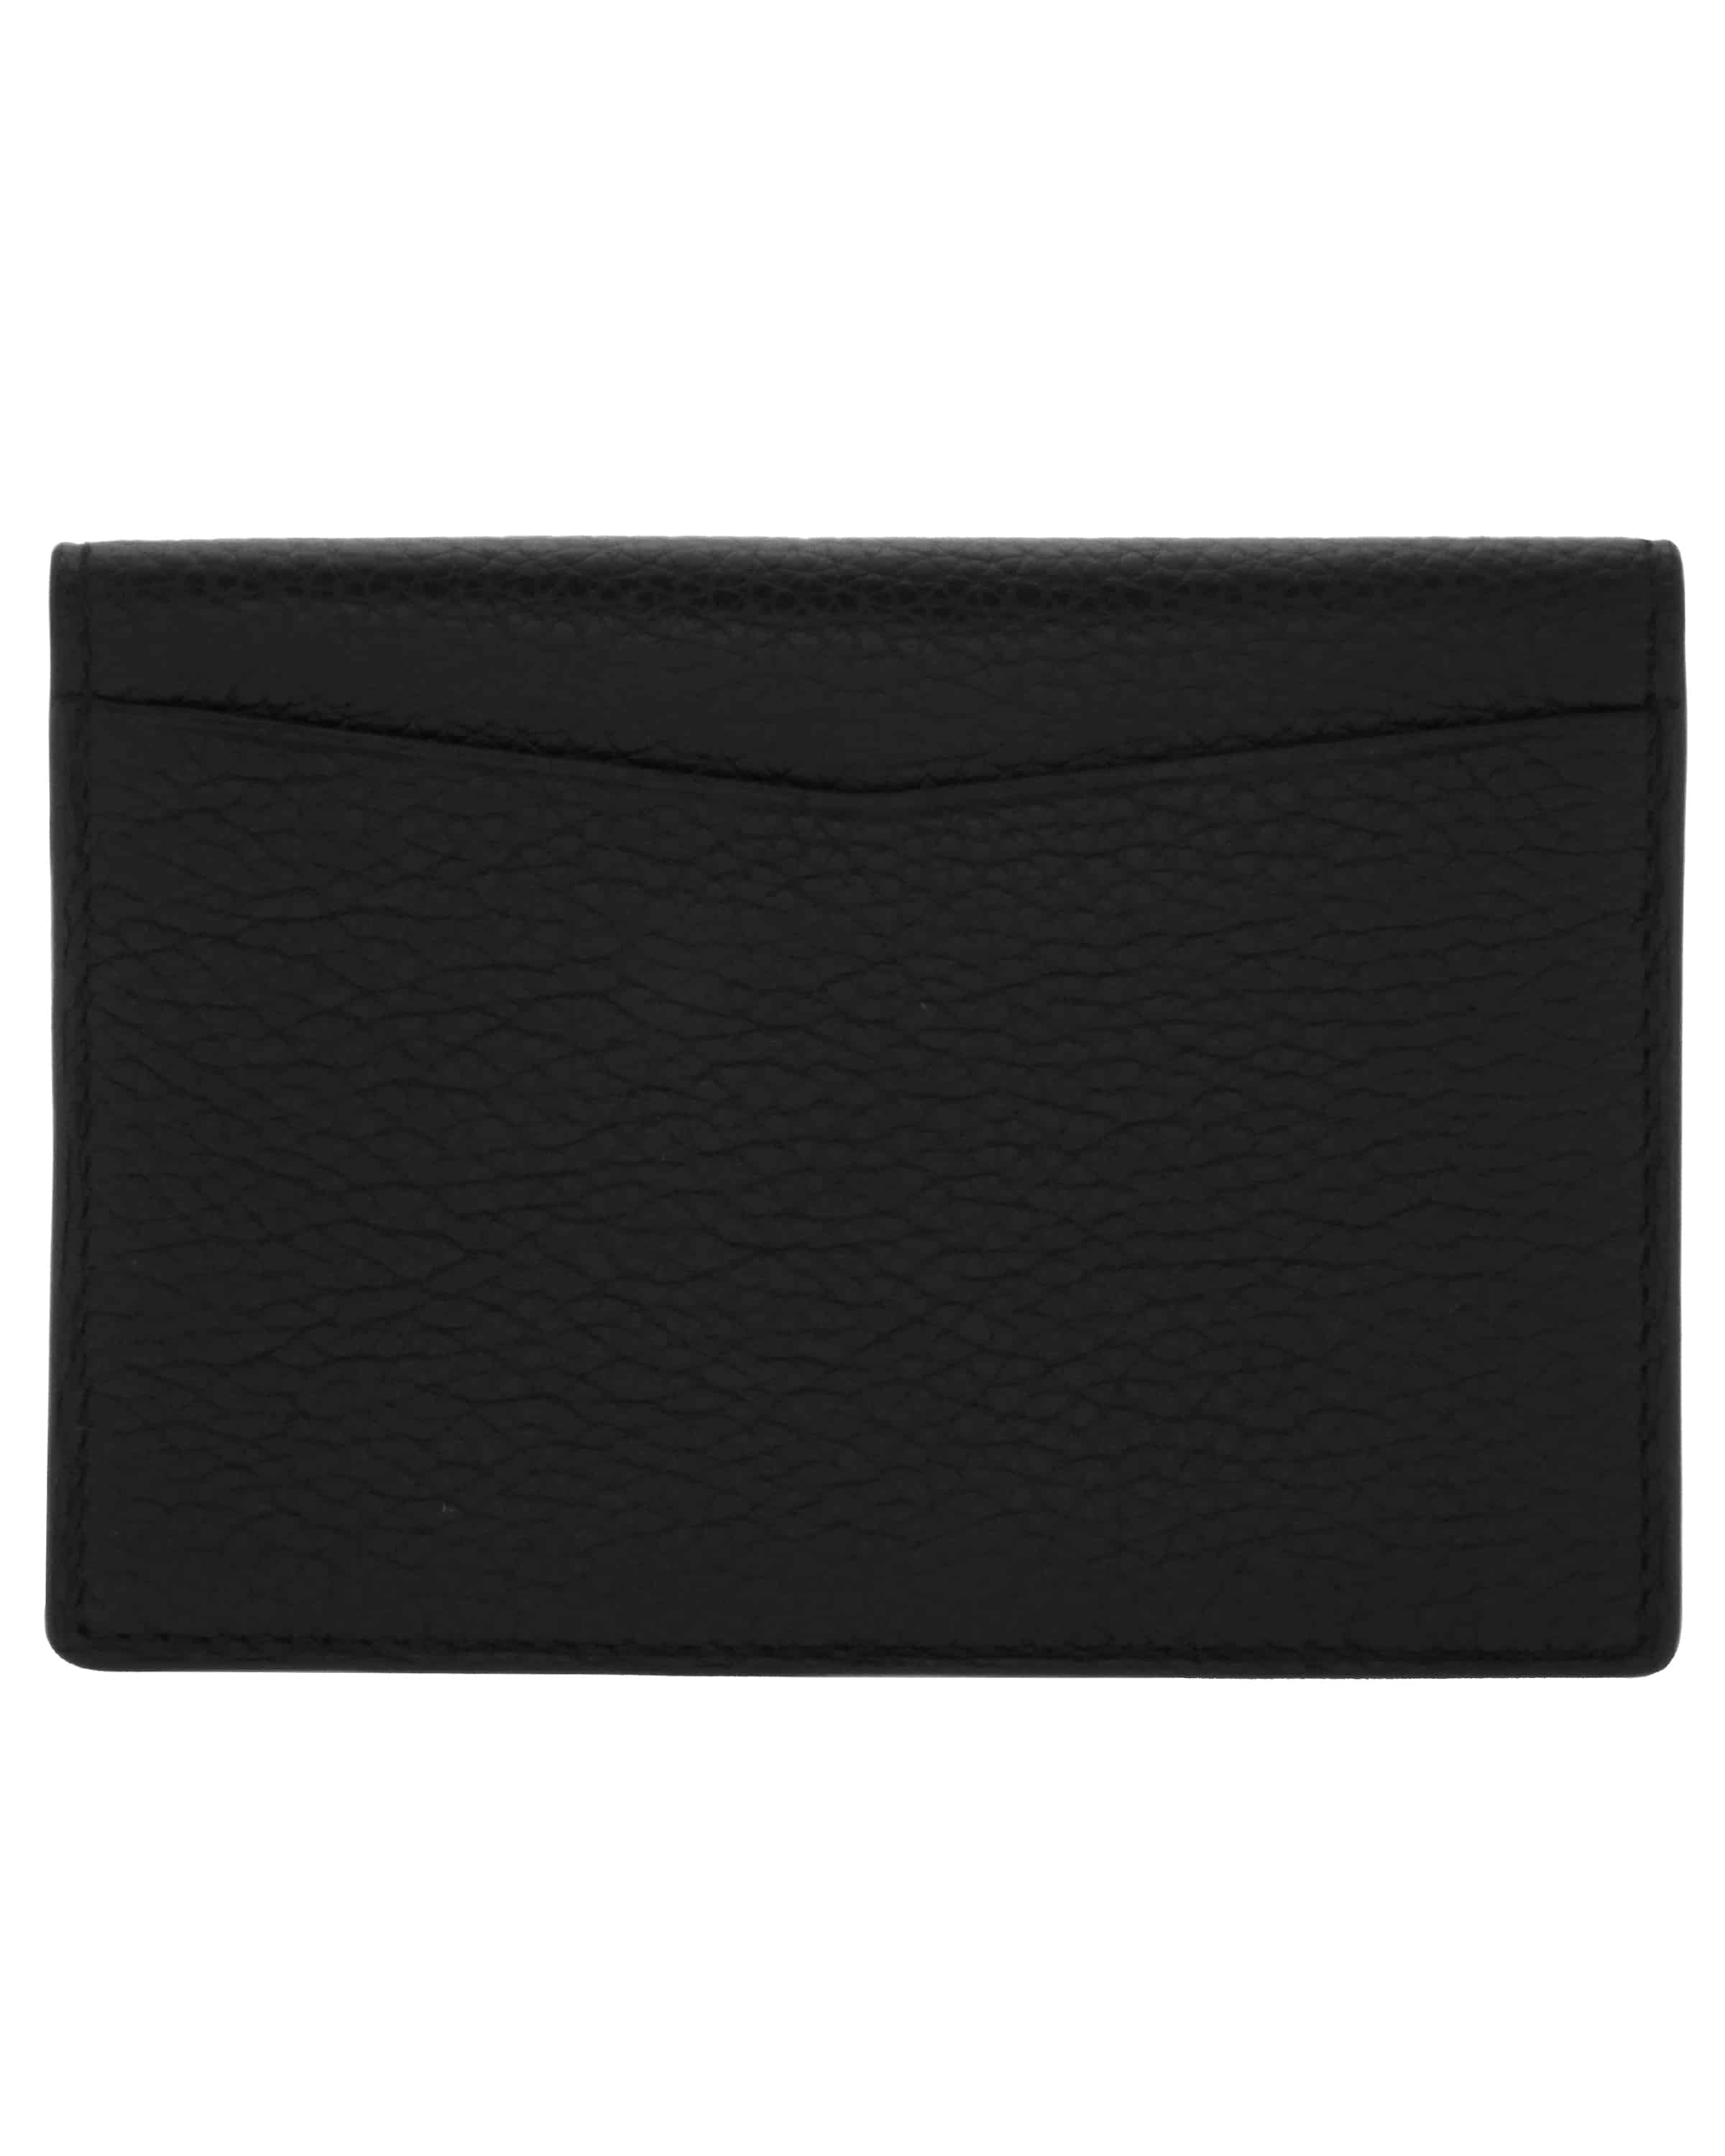 Dunhill Leather Boston Business Card Holder Wallet L2W347N